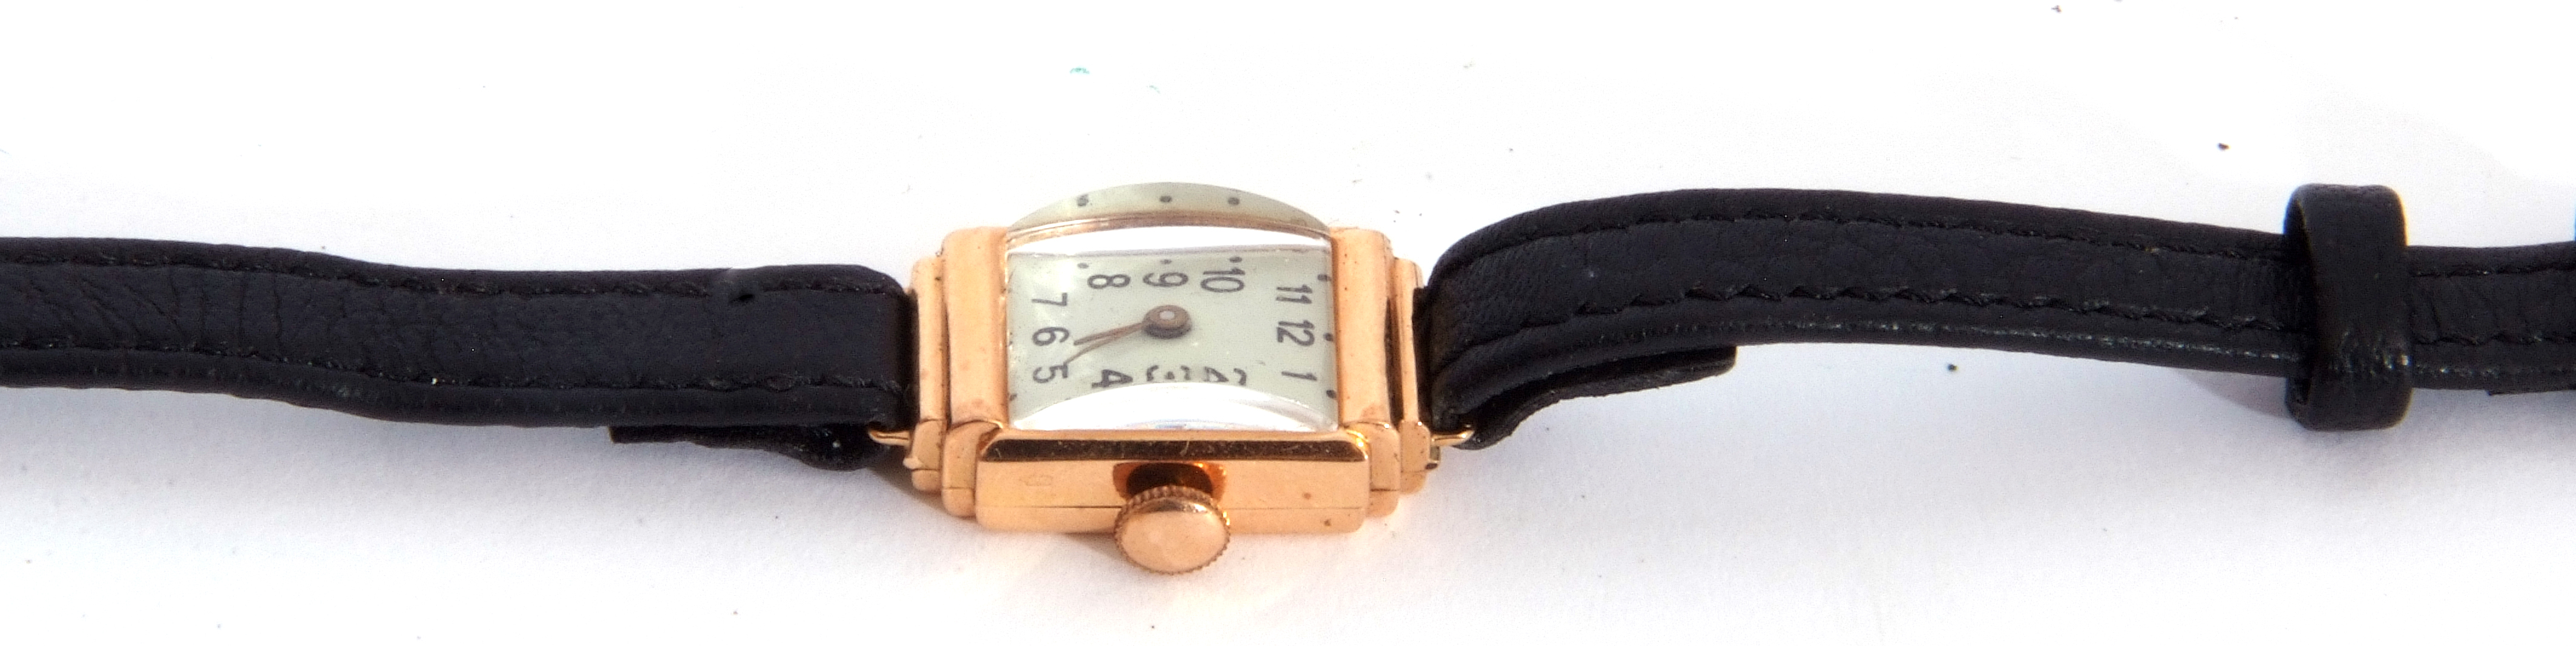 Second quarter of 20th century ladies cased wrist watch, the rectangular shaped case with un-named - Image 3 of 4